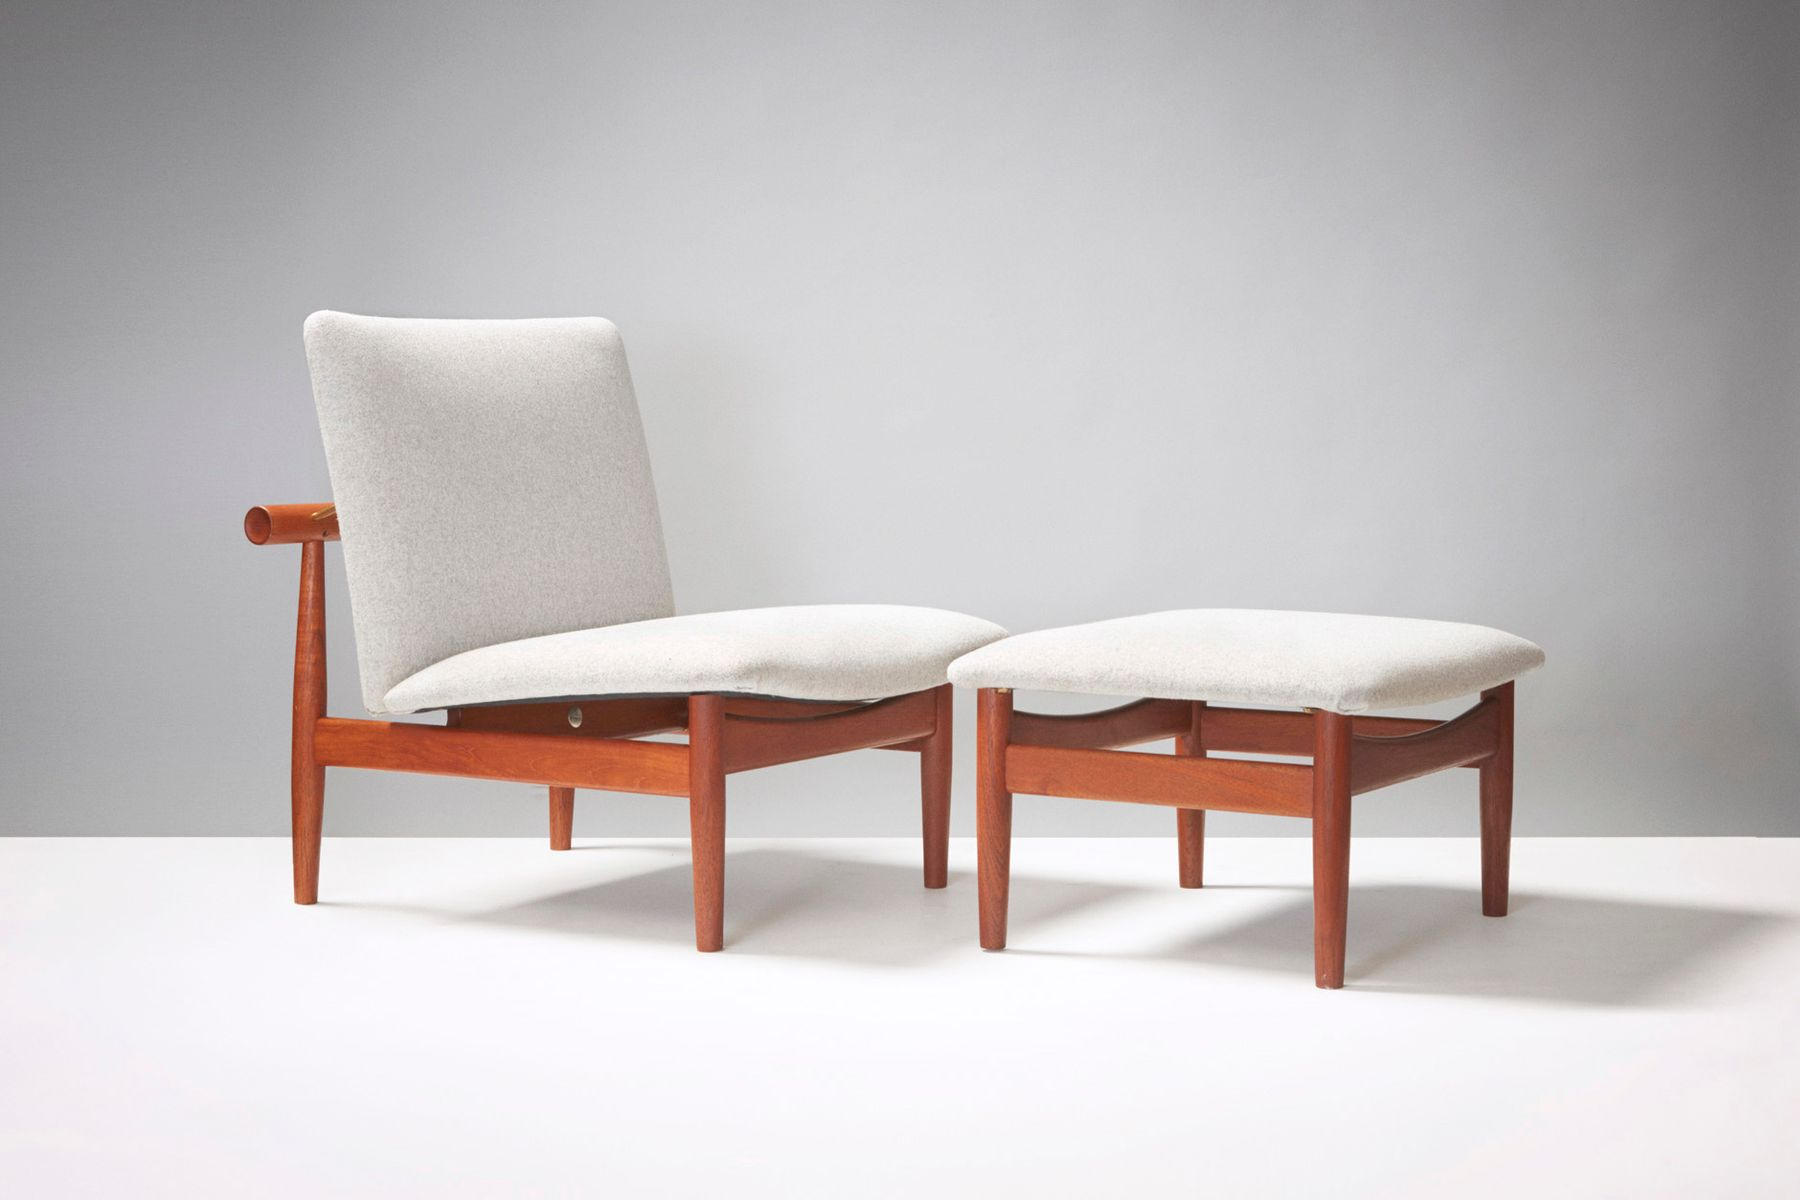 137 Japan Chair & Ottoman by Finn Juhl for France & Son 1950s for